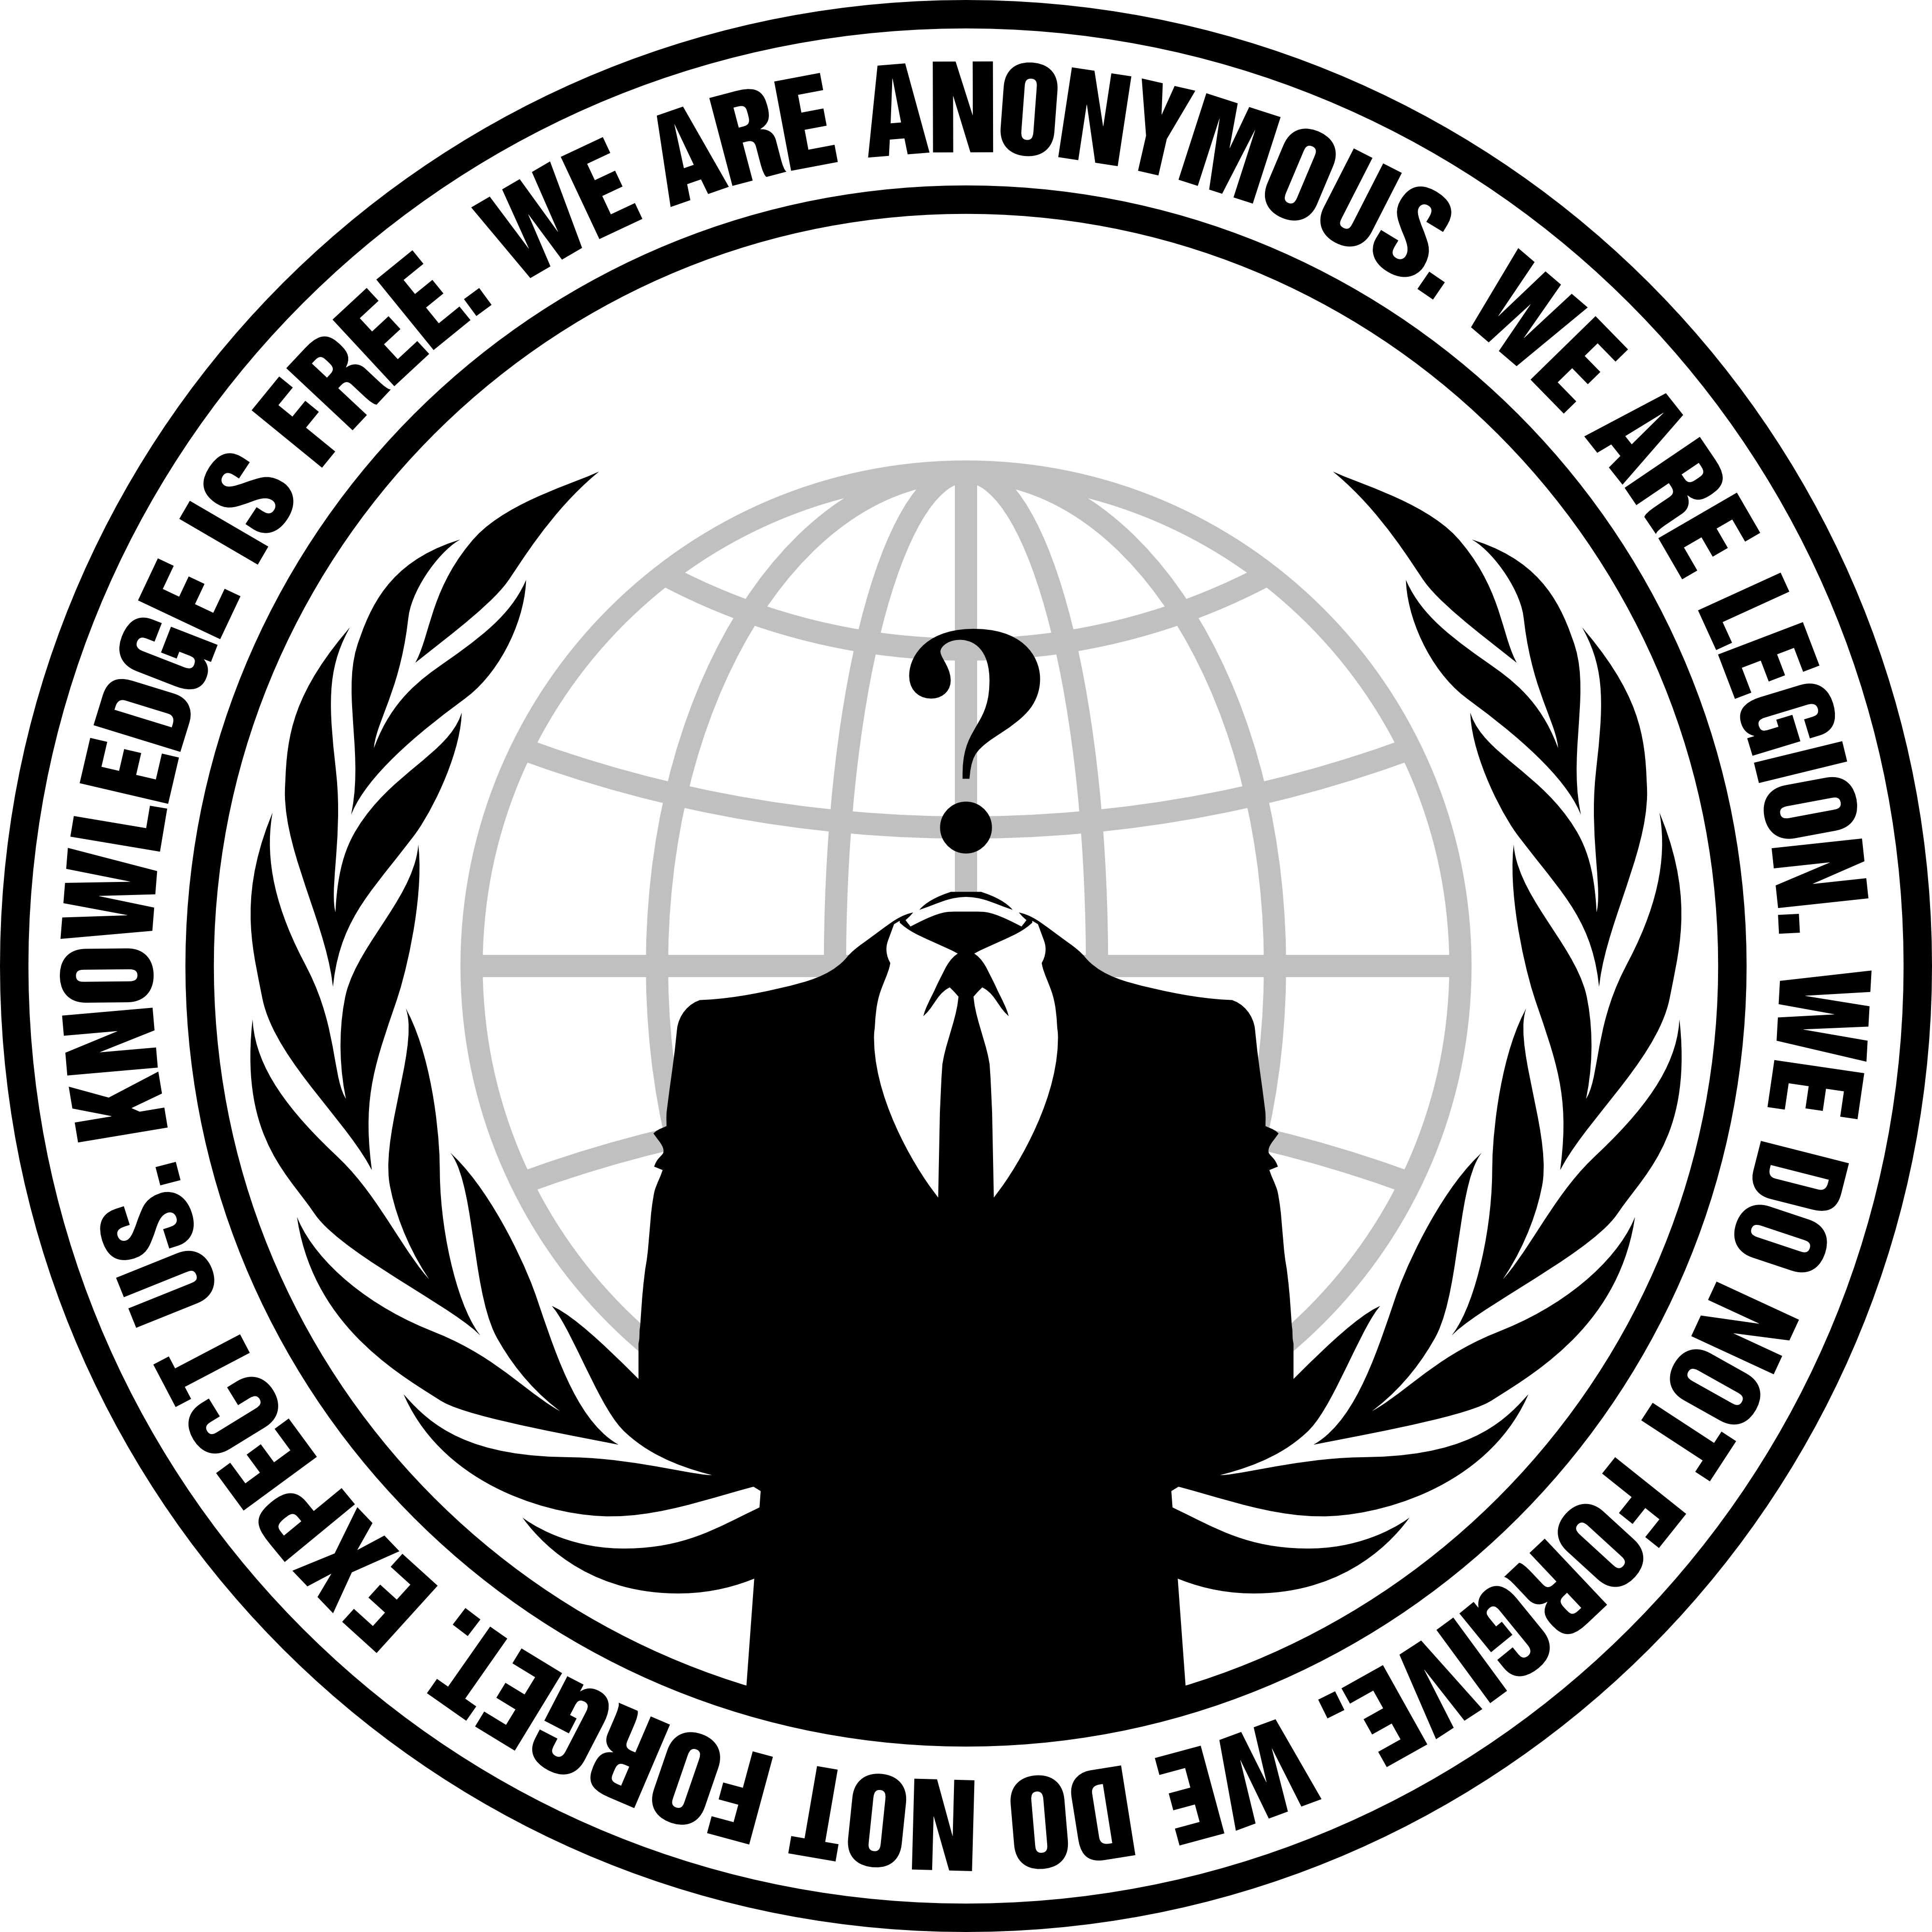 Logo Anonymous PNG - 101463